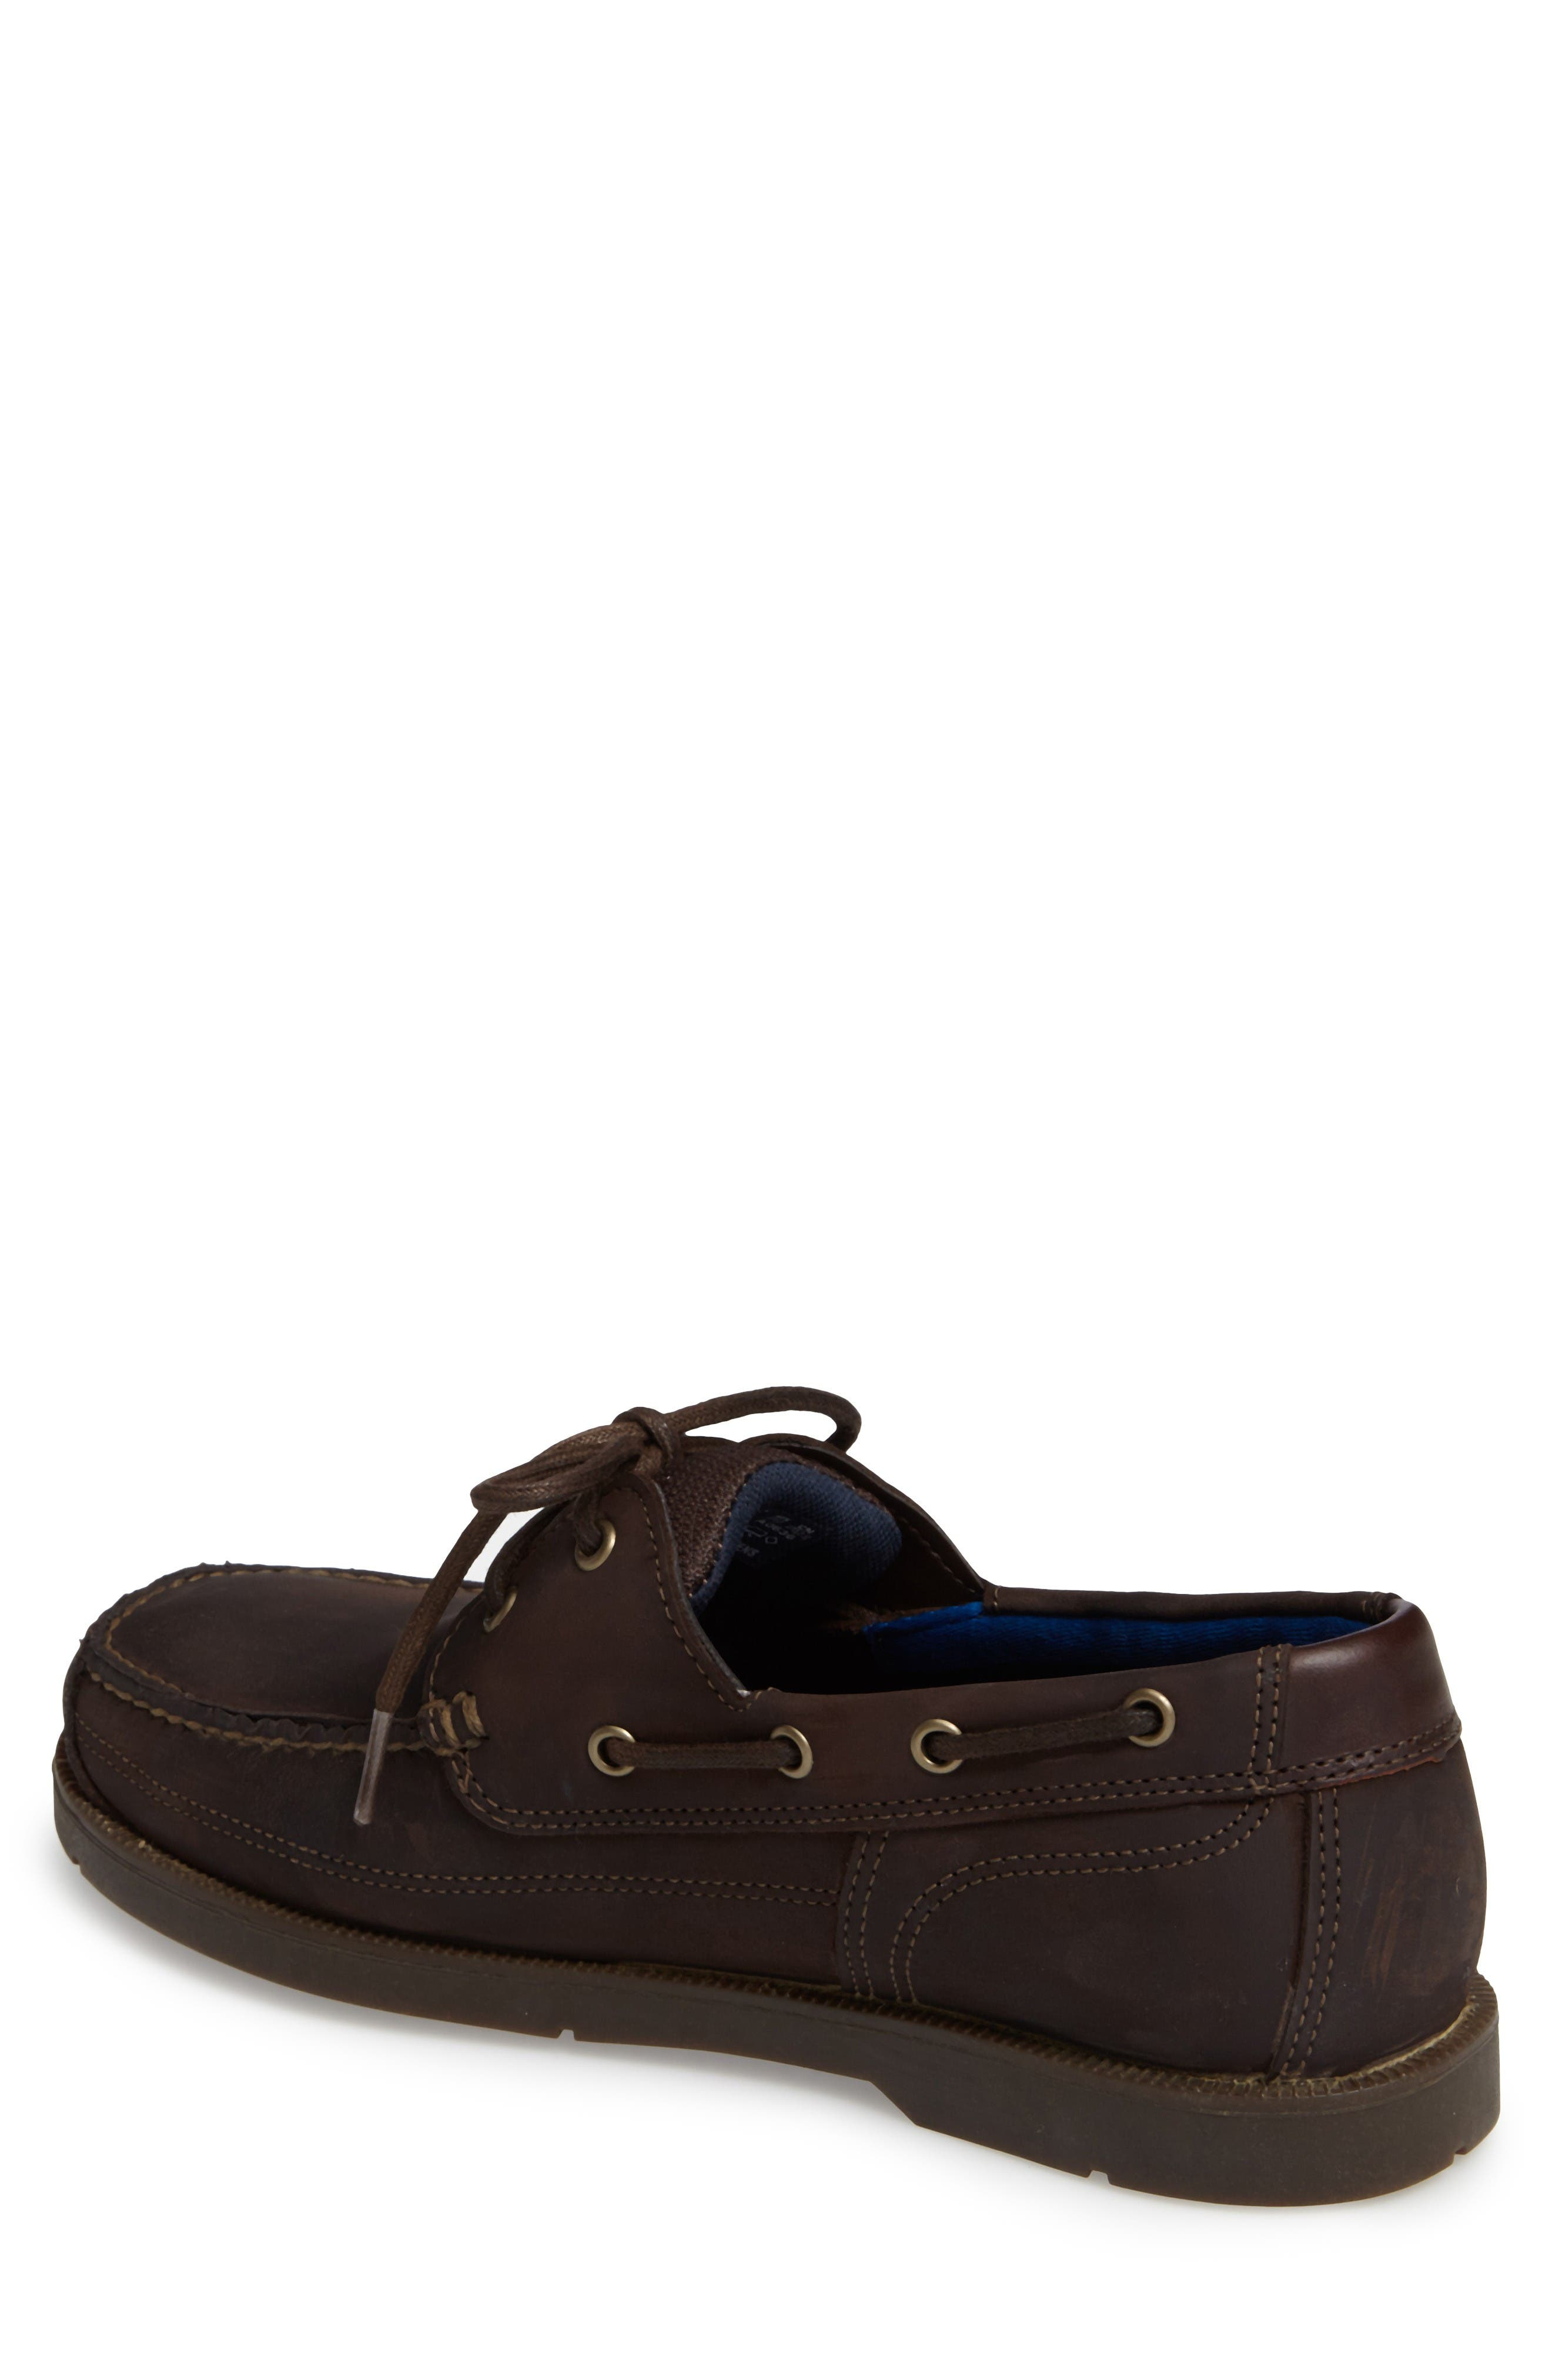 Piper Cove FG Boat Shoe,                             Alternate thumbnail 2, color,                             Chocolate Leather